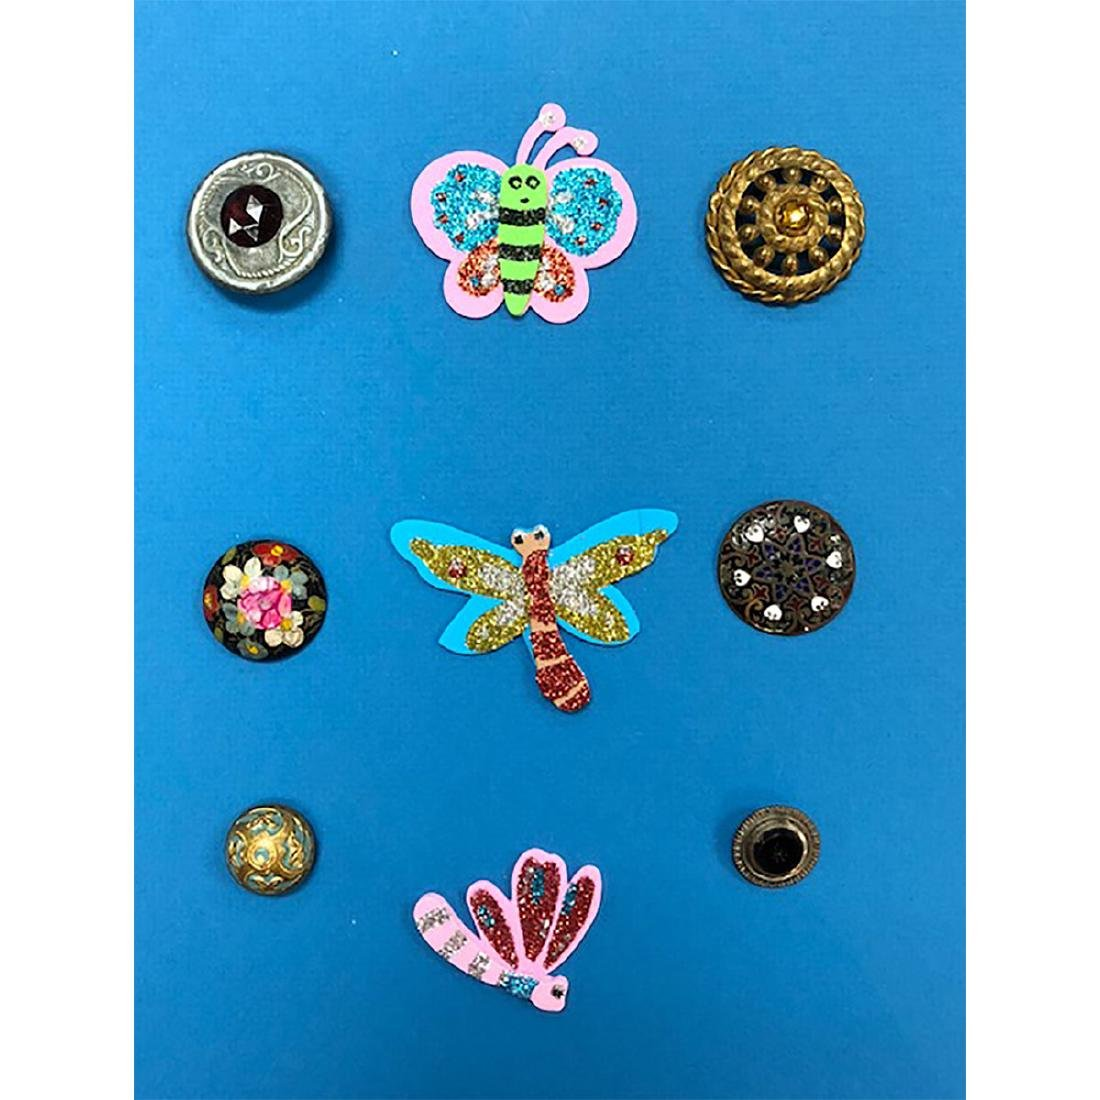 6 CARDS OF HORN/VI/WOOD BUTTONS S/M/L - 9